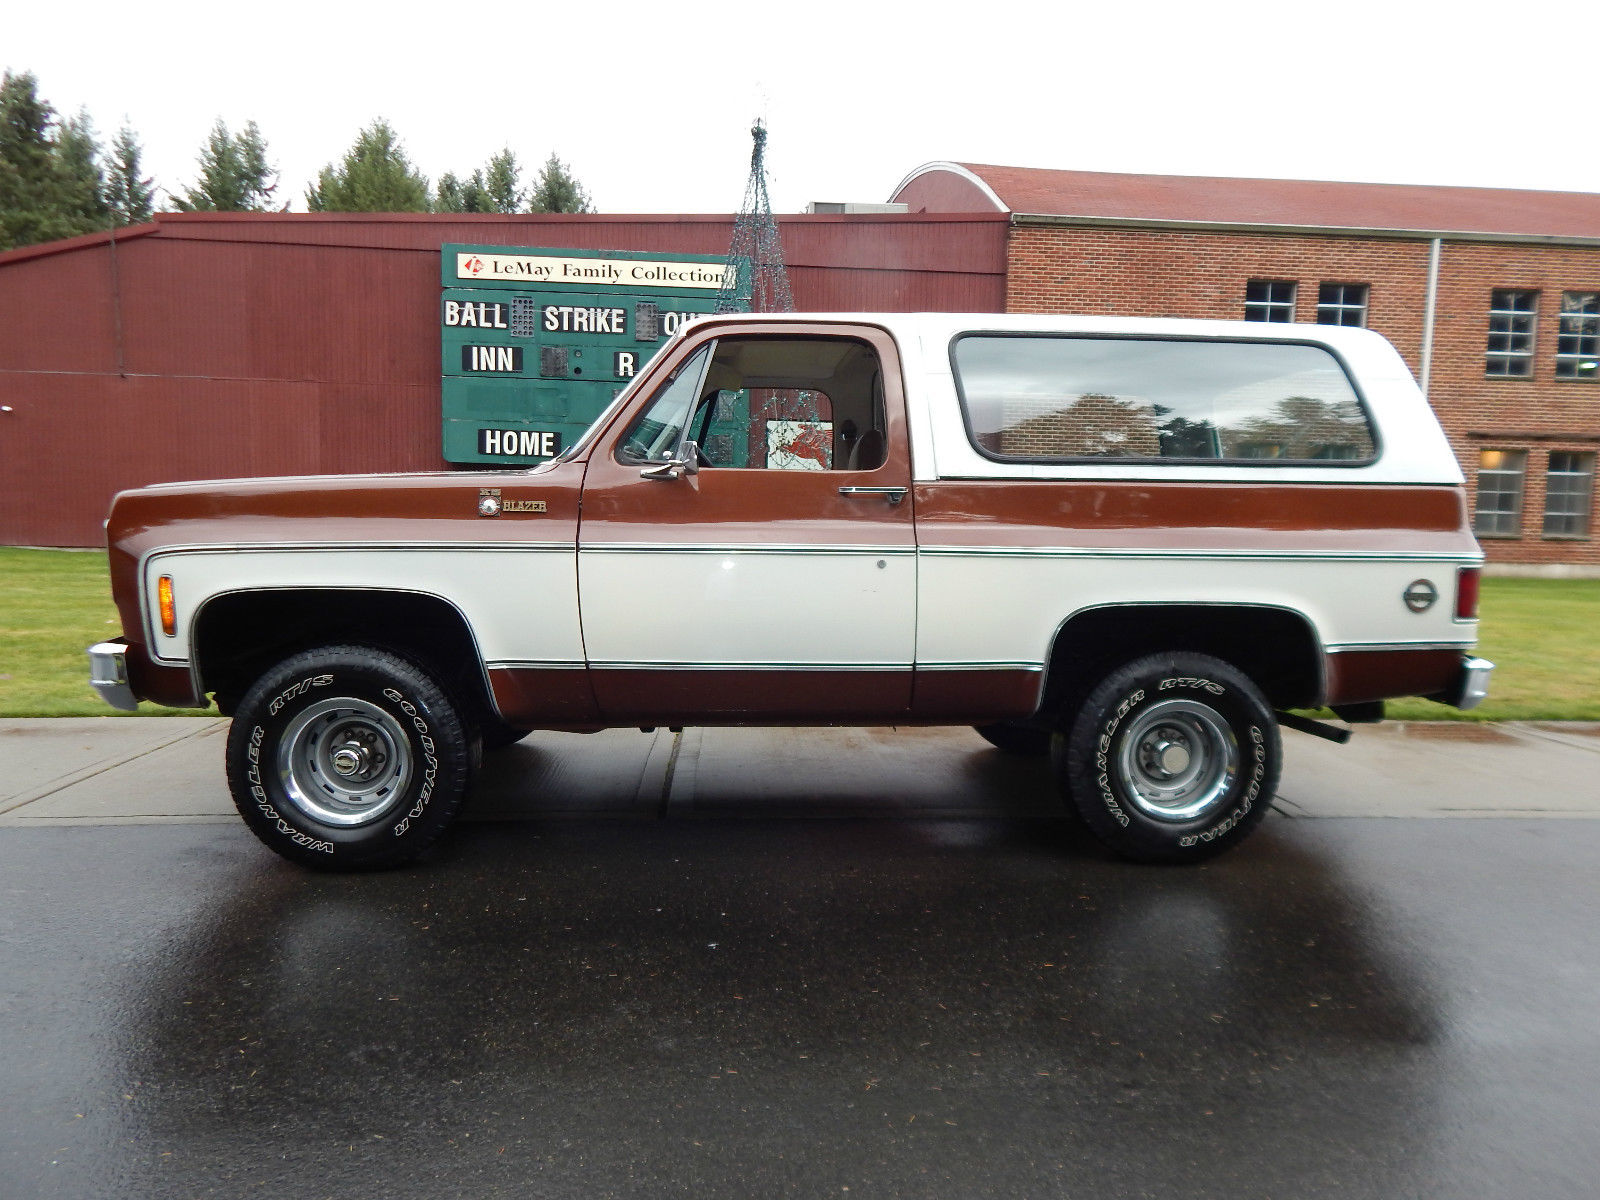 5852 1978 Chevrolet Blazer K5 4x4 350 Low Miles 79k 1 Owner No Reserve Sell Worldwide besides 1974 Chevy K5 Blazer as well 30150 1966 Chevrolet Suburban 4x4 California Truck 2 Owner Well Maintained additionally Watch furthermore Showthread. on 1972 chevrolet 4x4